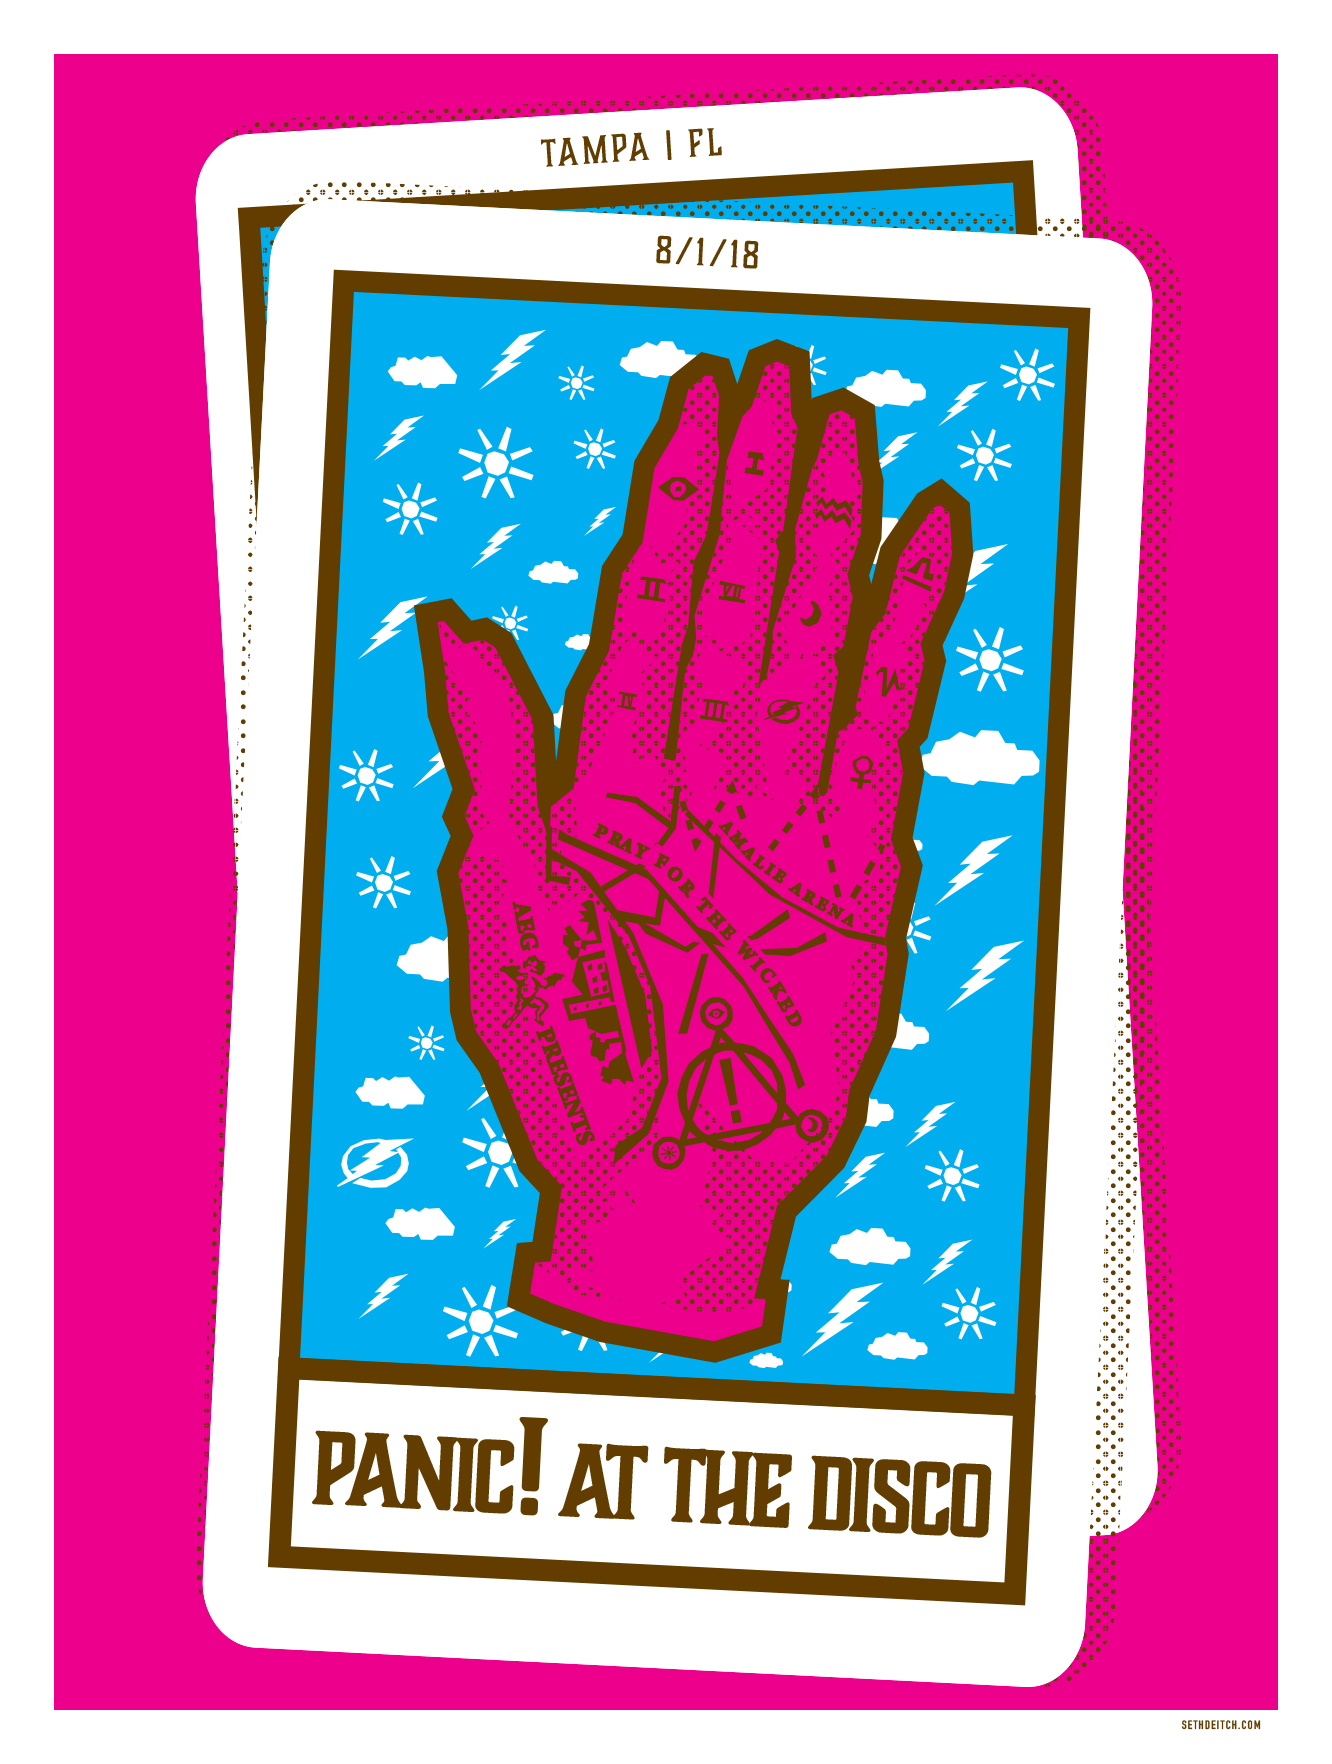 Panic! At the Disco - 3 Color Screen Print